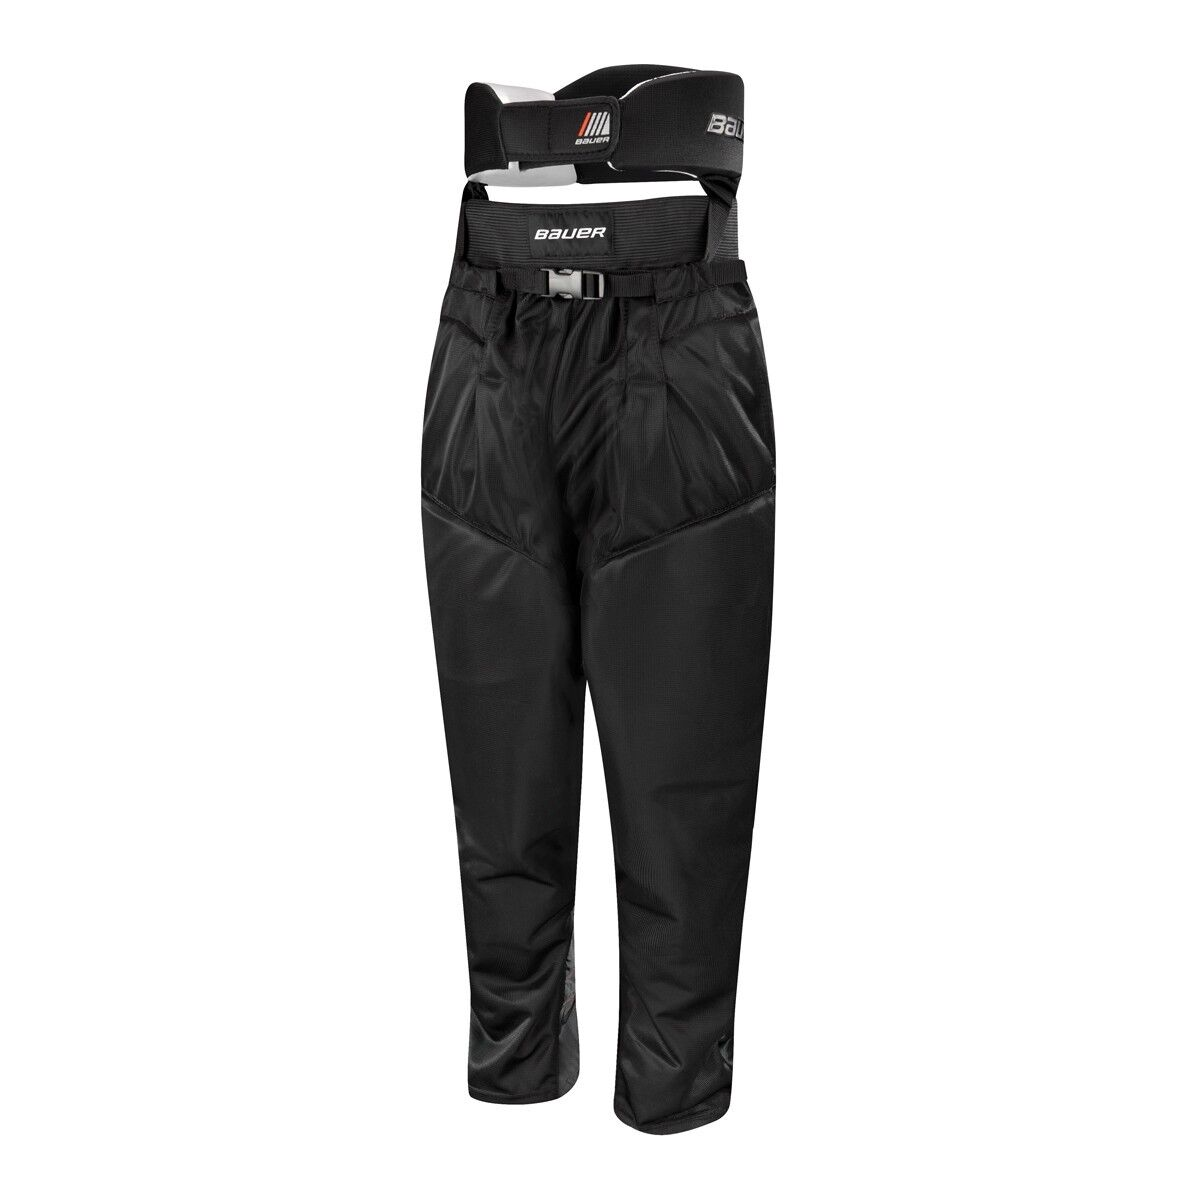 Bauer Official's Pant with Integrated Girdle